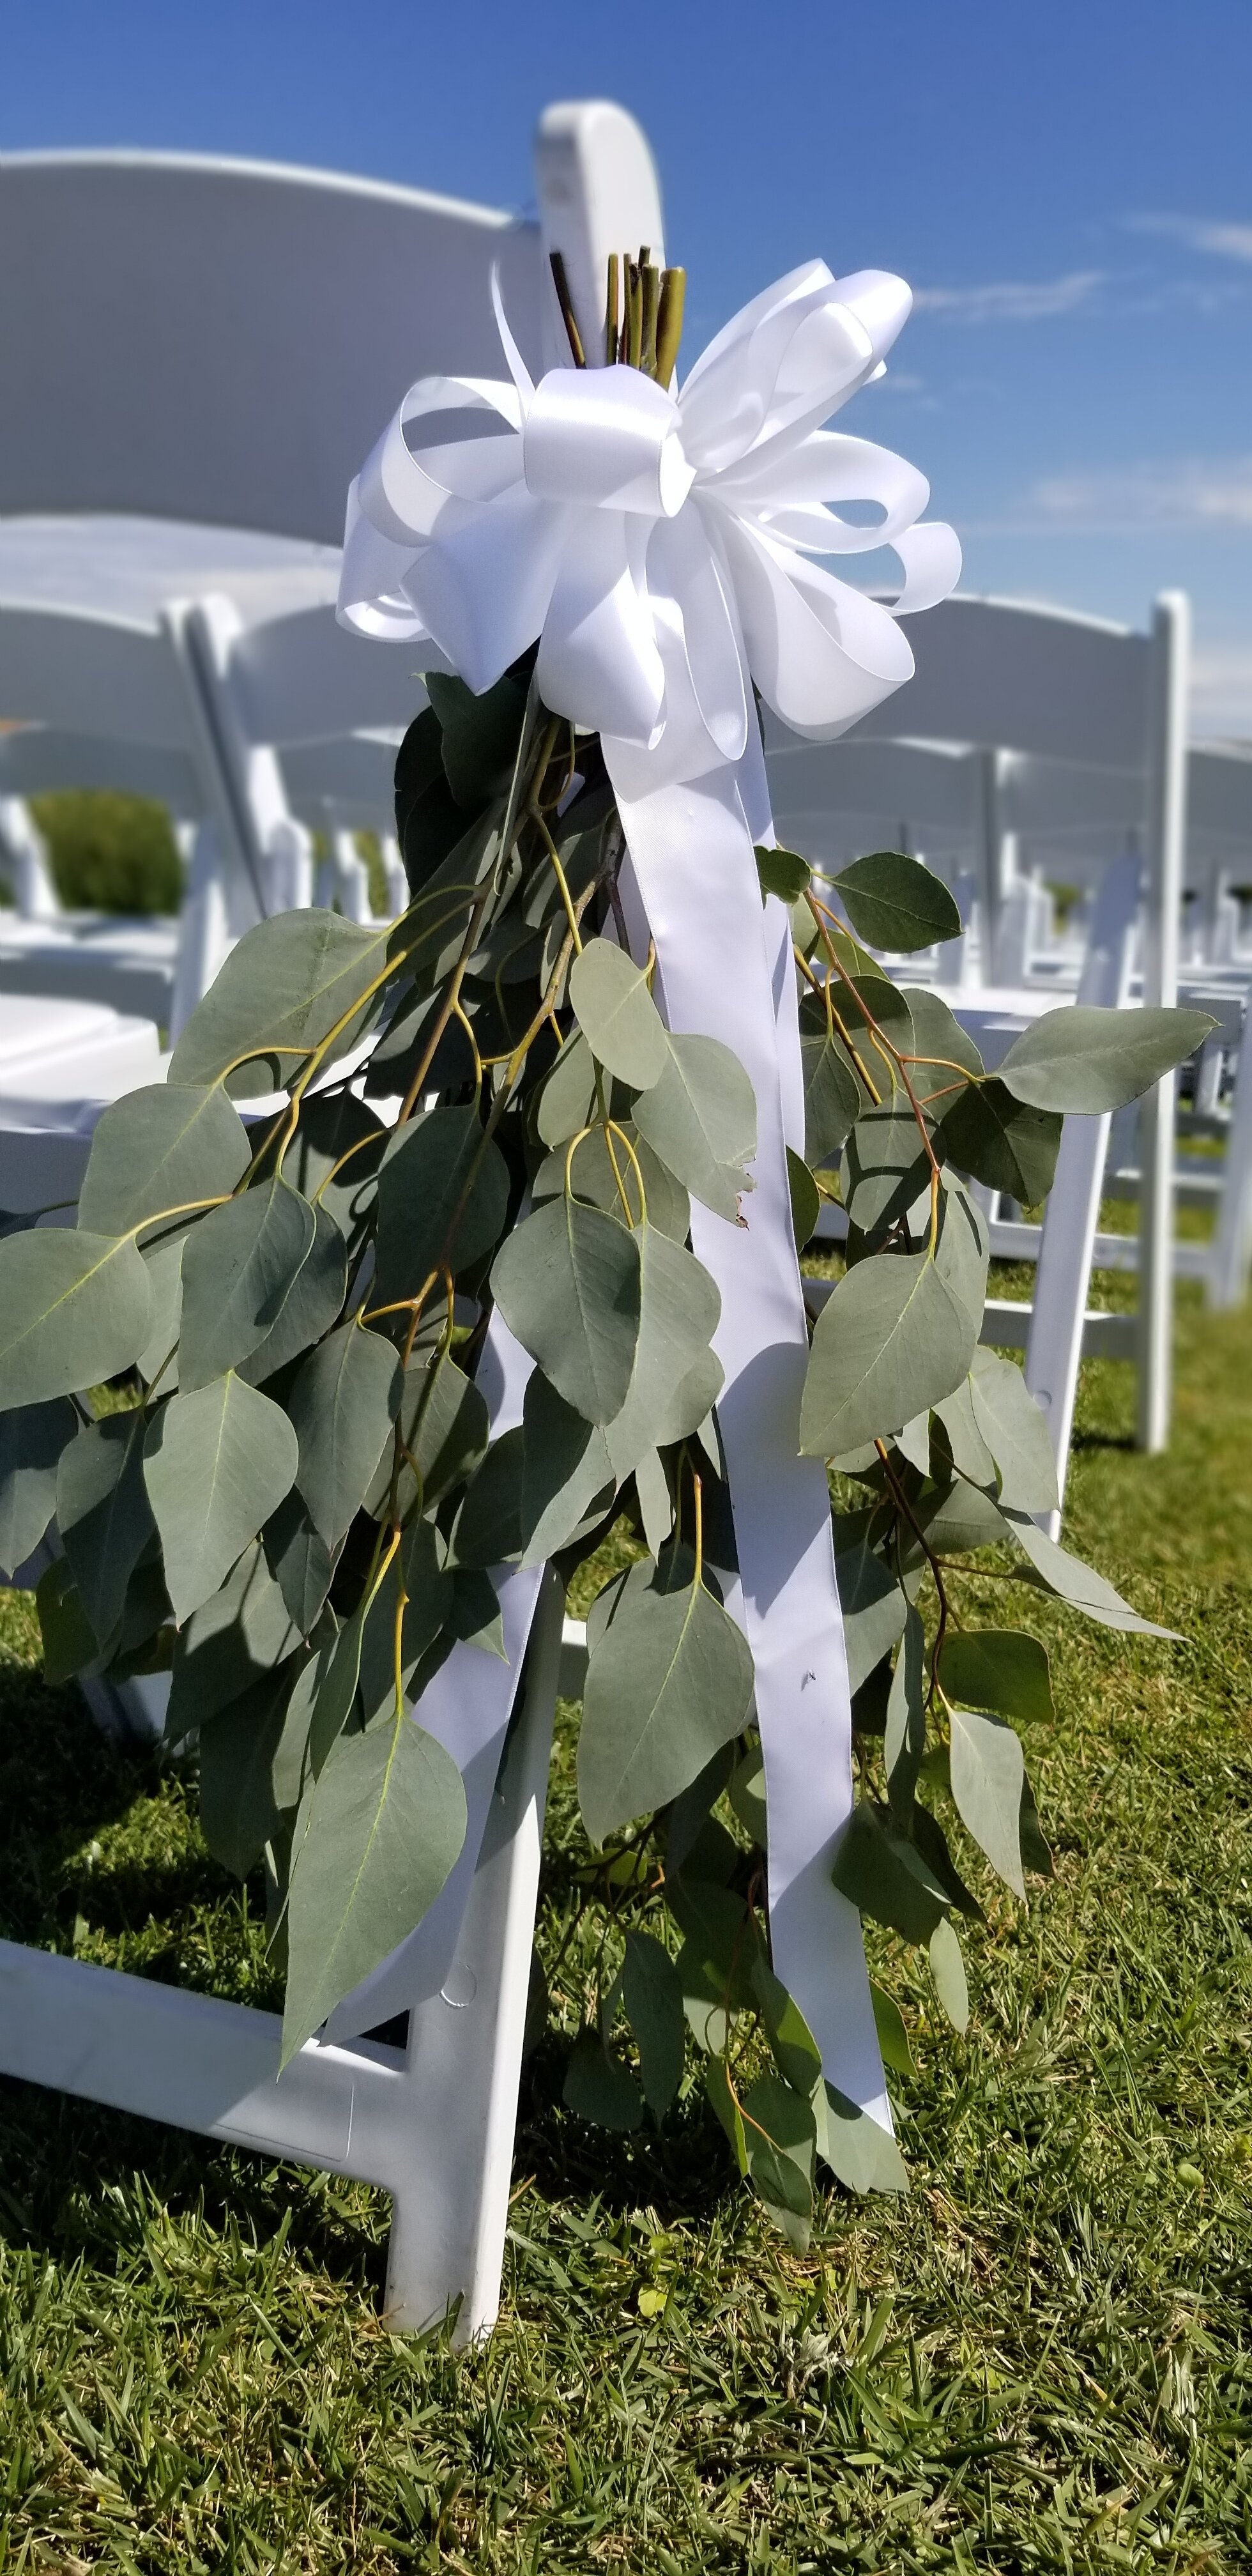 Aisle chair bouquets, gathering of fresh eucalyptus. Eagle Vines Golf Course, American Canyon